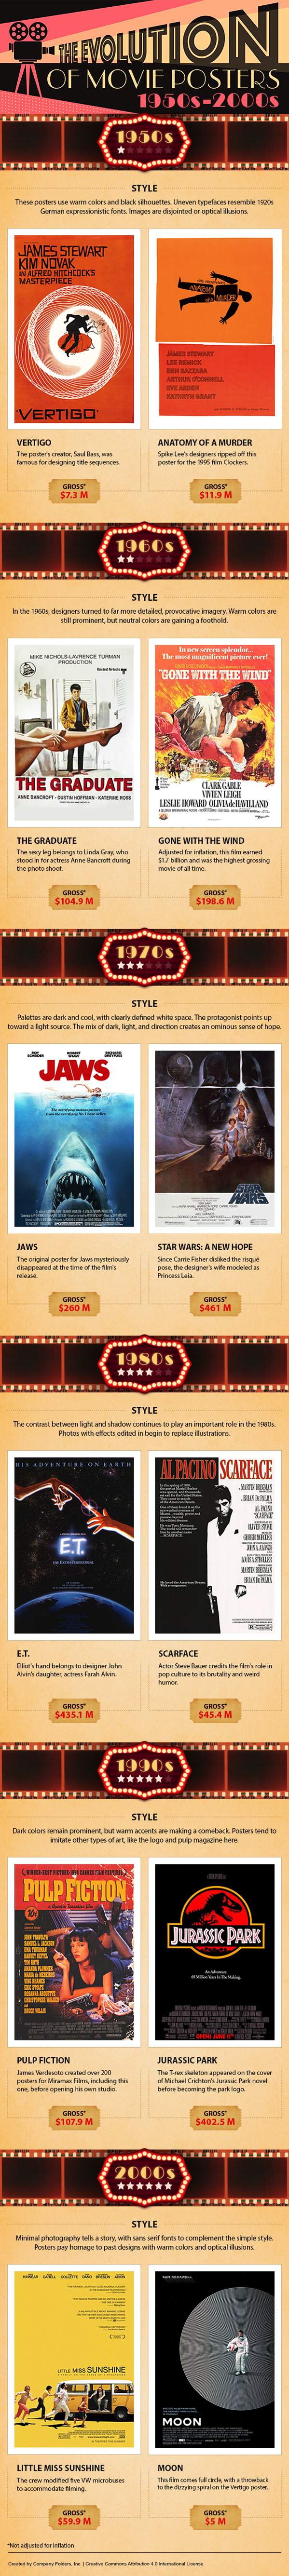 Movie Posters Infographic